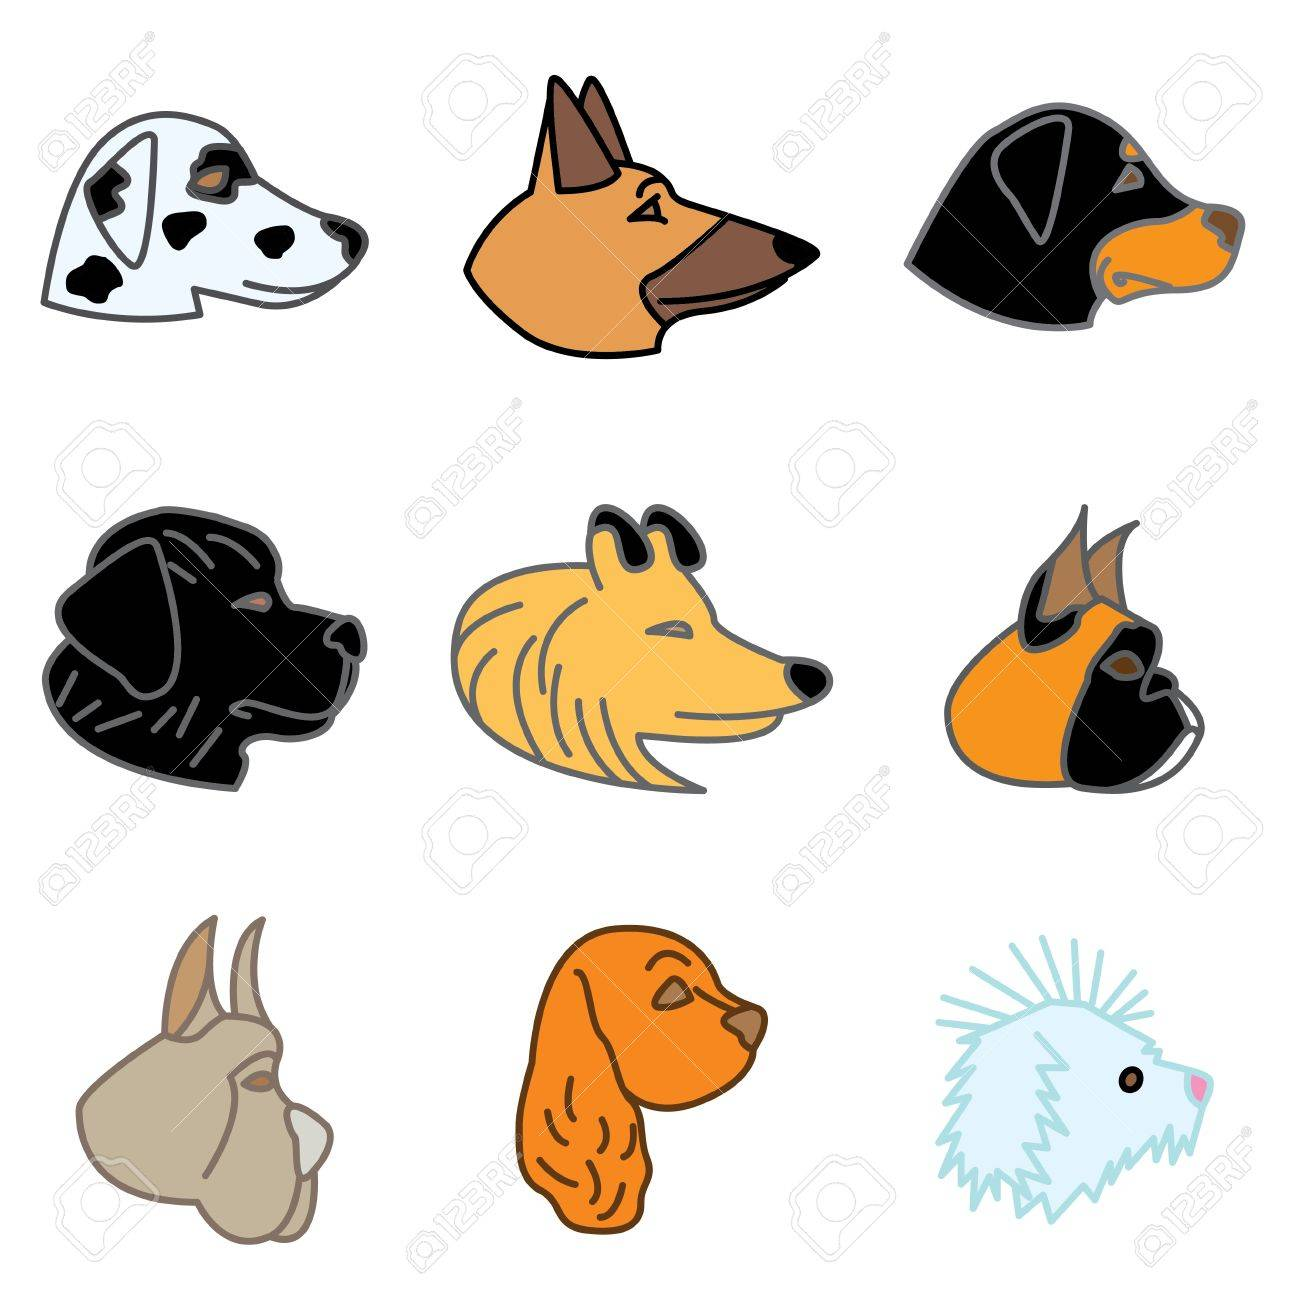 Cocker Spaniel: Breeds Of Dogs Hand Drawn Icons In Vector